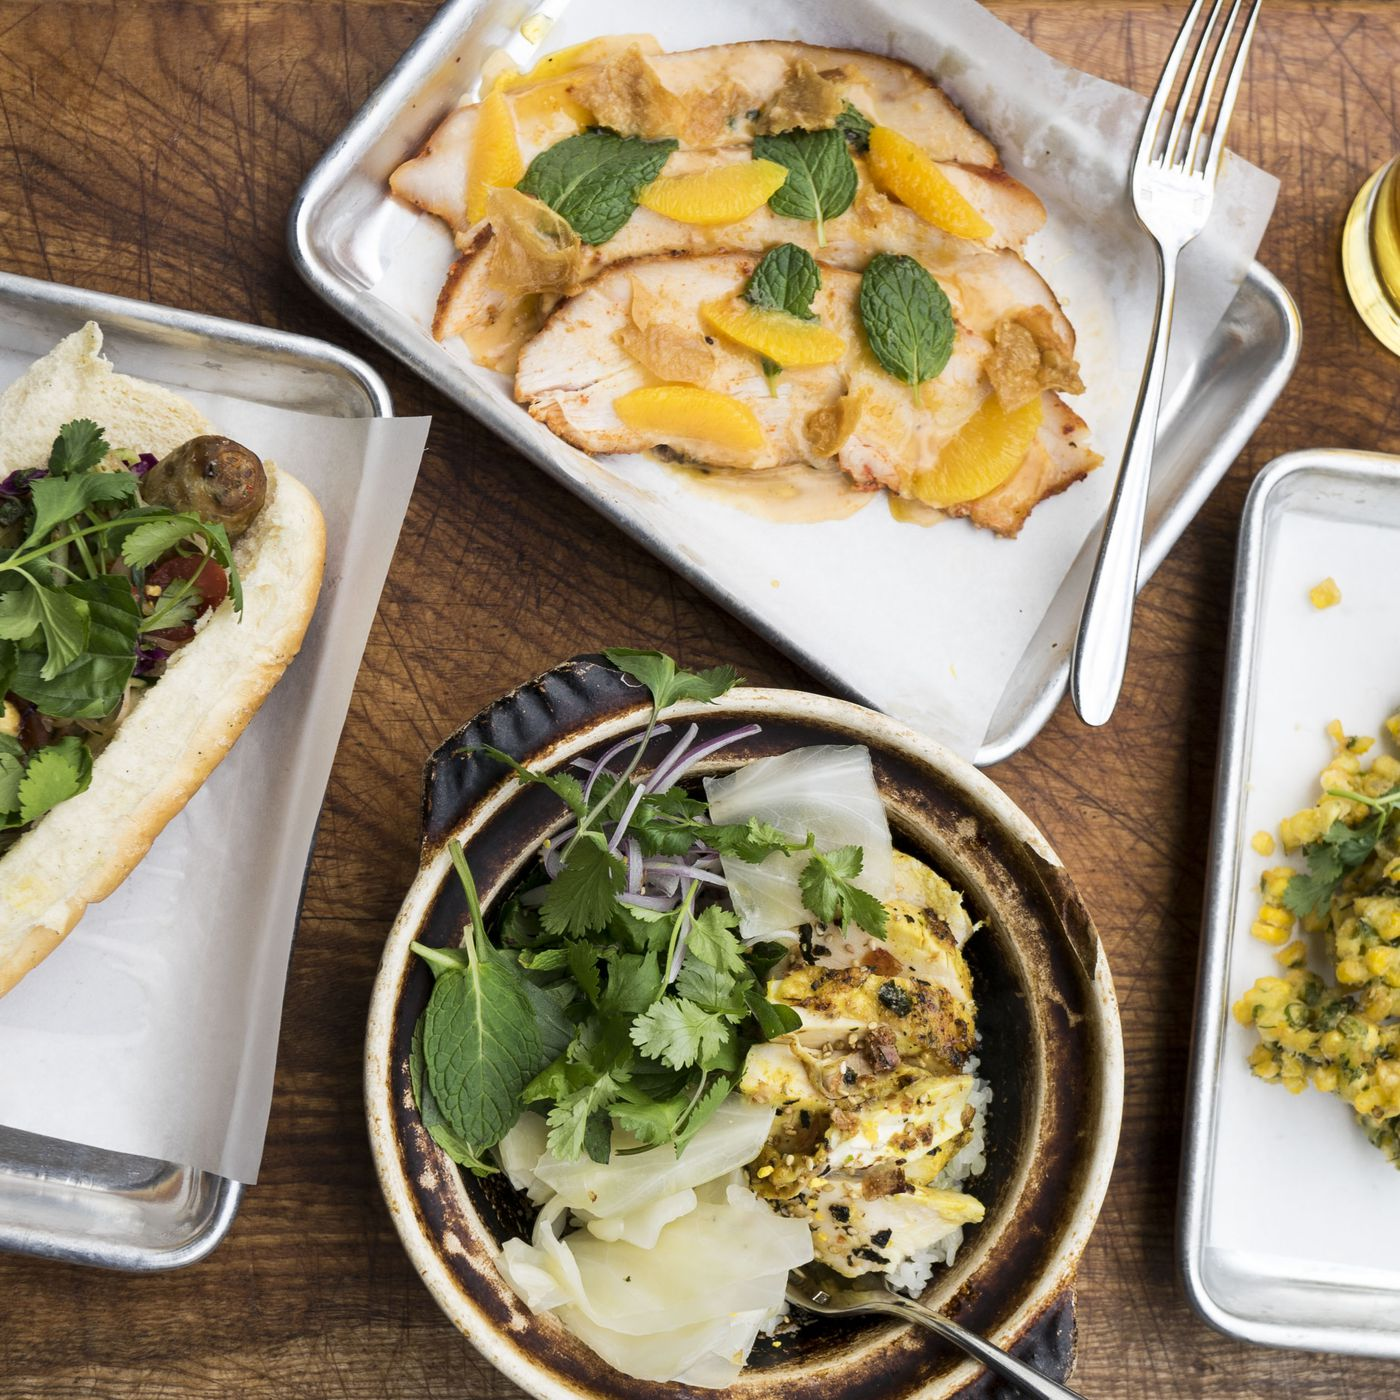 20 New Austin-Area Restaurant Openings to Know - Eater Austin